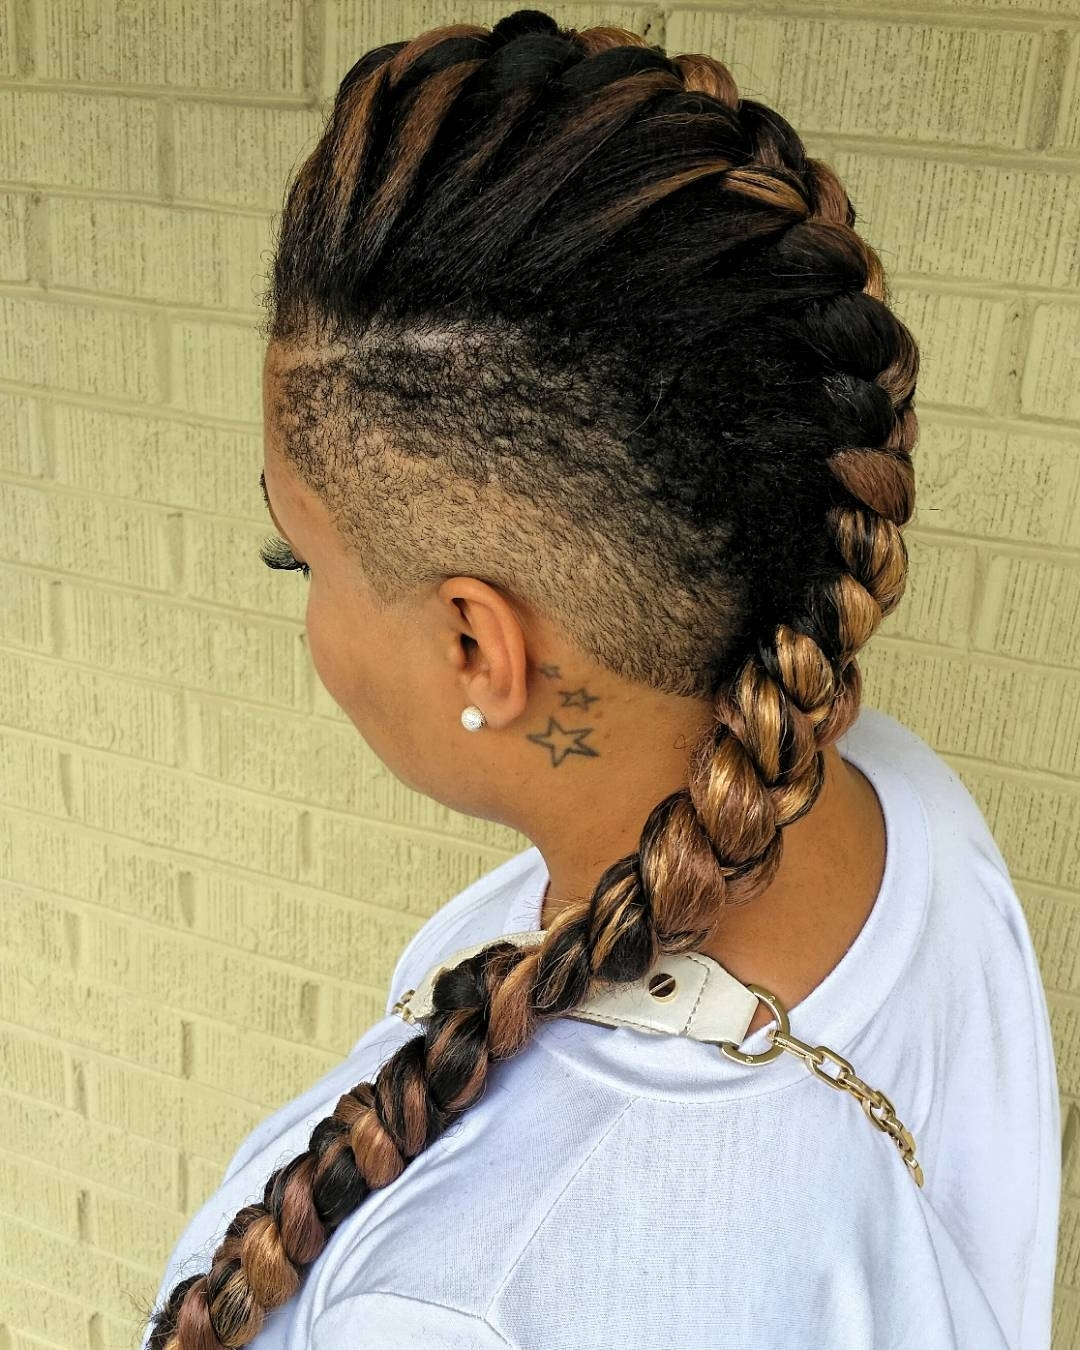 Most Popular Chunky Mohawk Braids Hairstyles Inside Mohawk Braids: 12 Braided Mohawk Hairstyles That Get Attention (View 9 of 15)